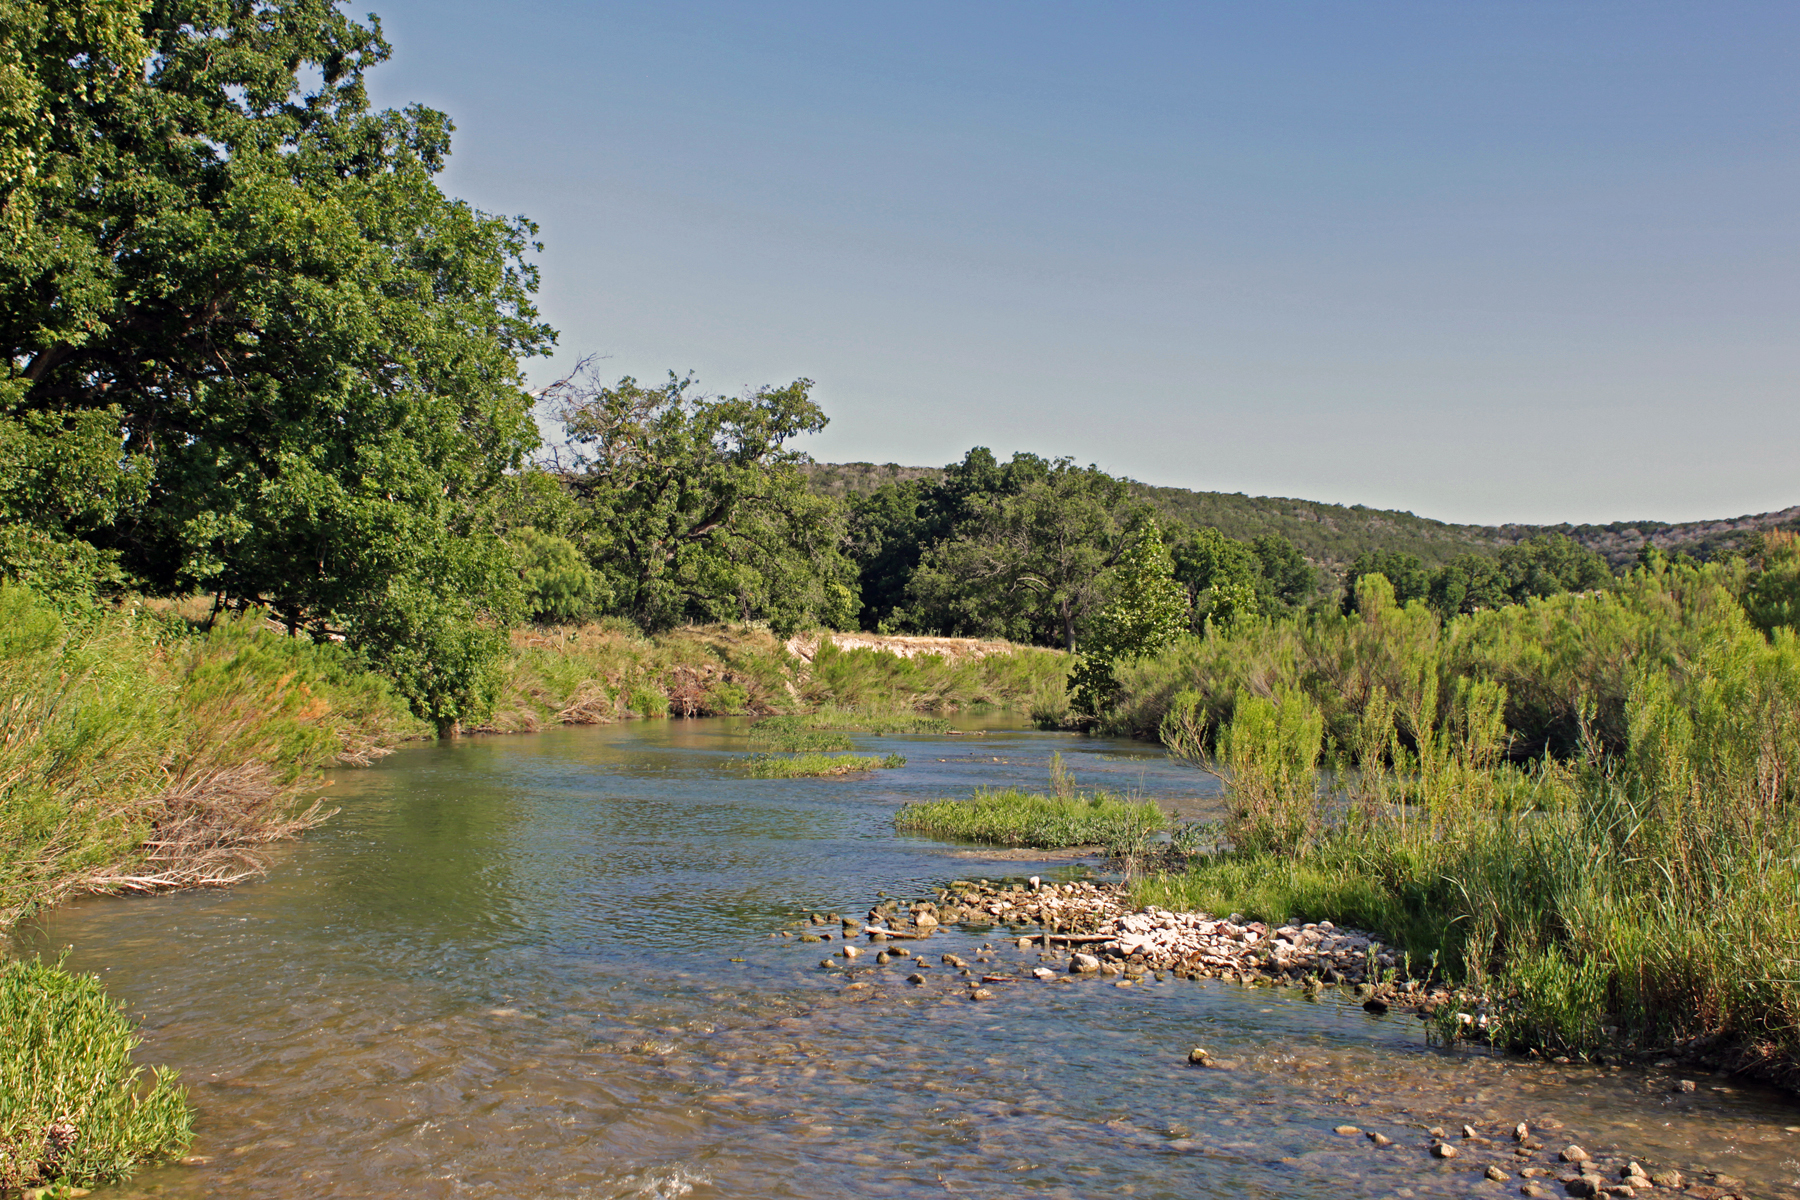 South Llano River State Parl